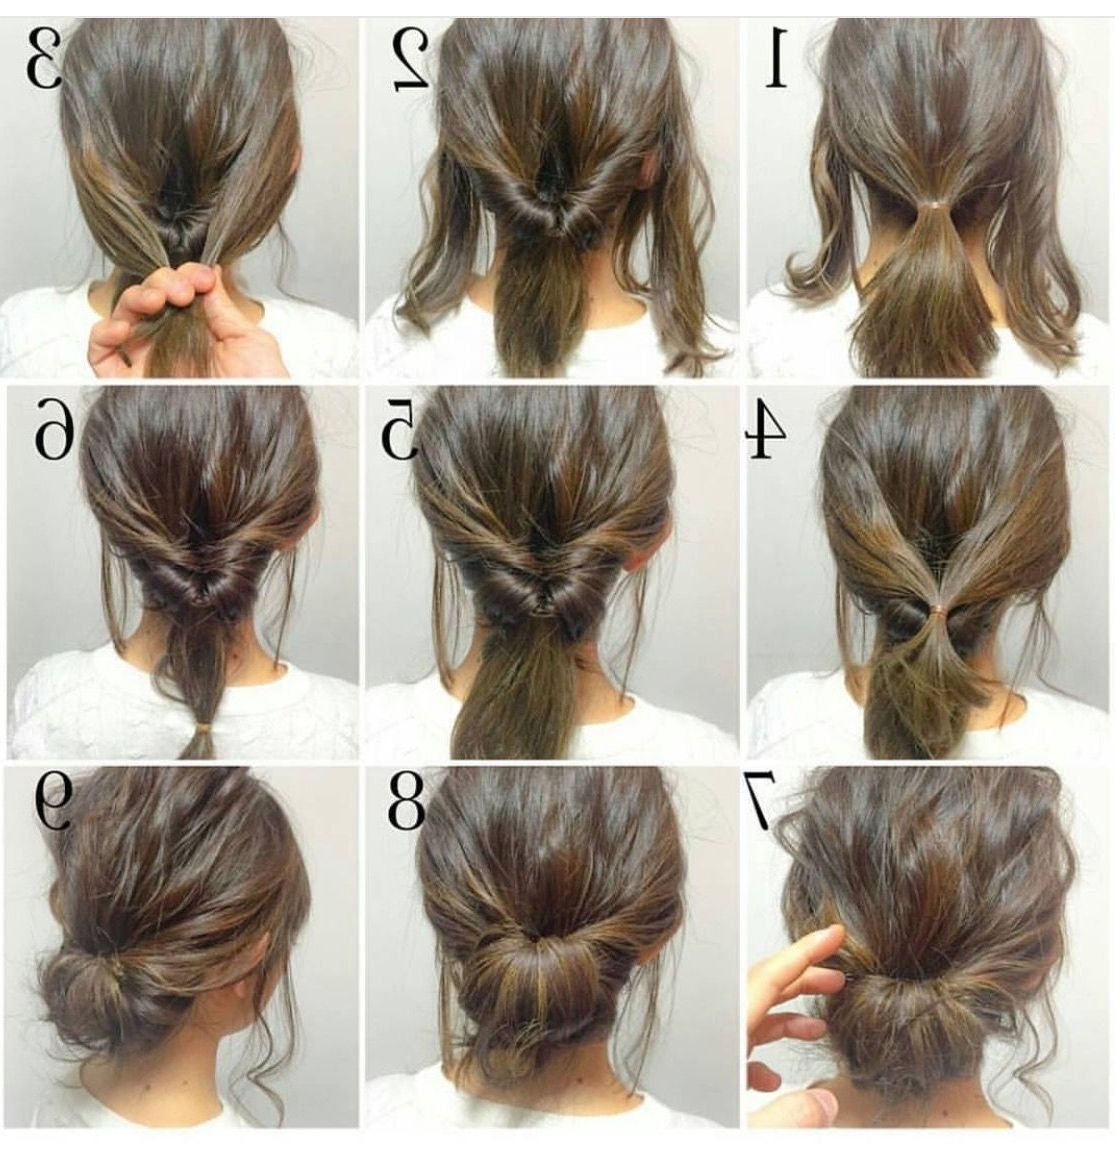 4 Messy Updos For Long Hair | Hairz | Pinterest | Updos, Hair Style Inside Easy Updo Hairstyles For Layered Hair (View 7 of 15)